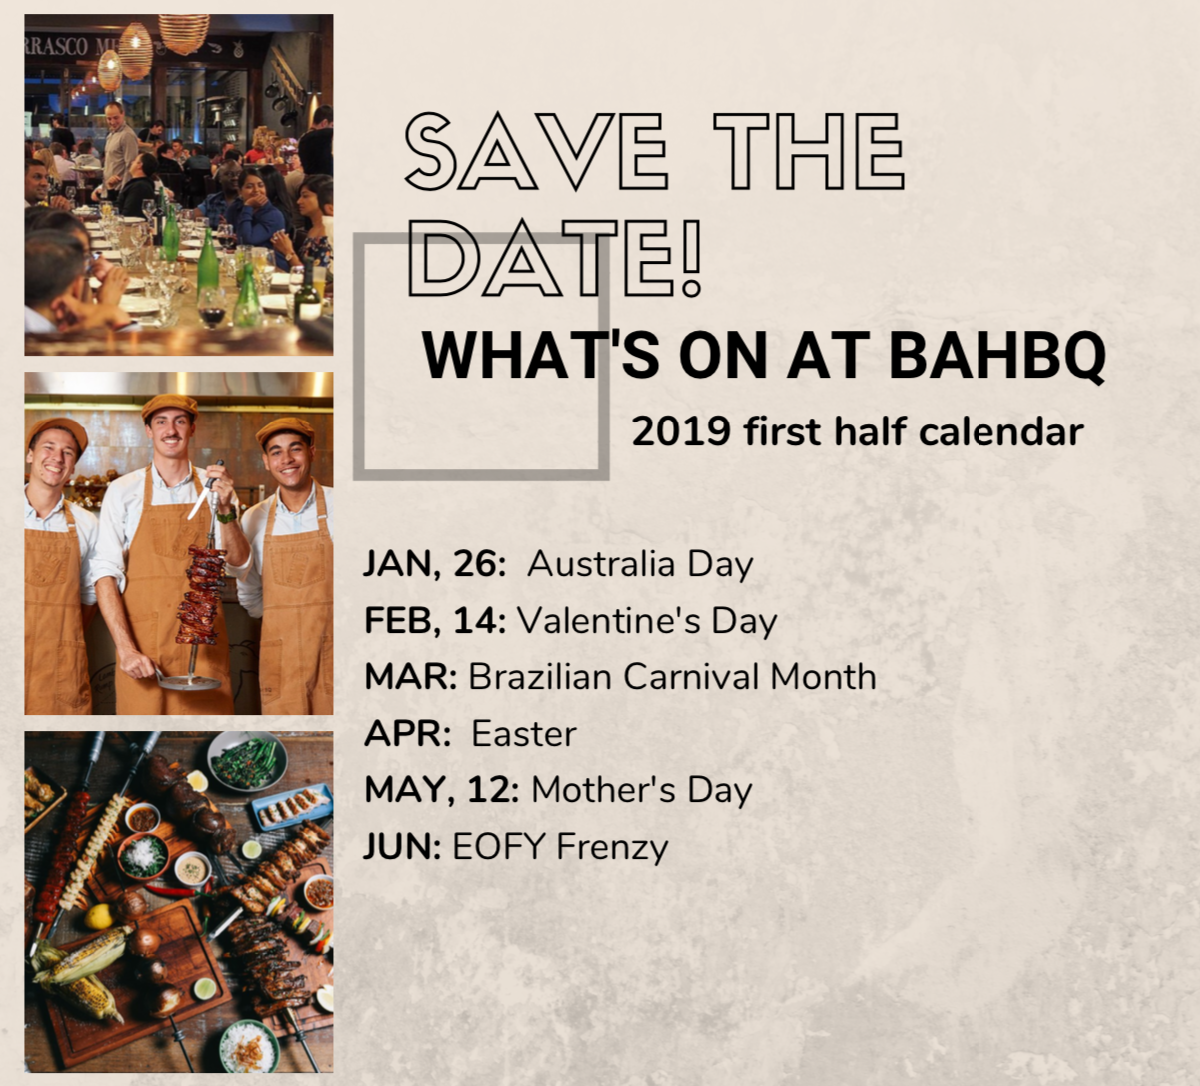 What's On at BahBQ in 2019